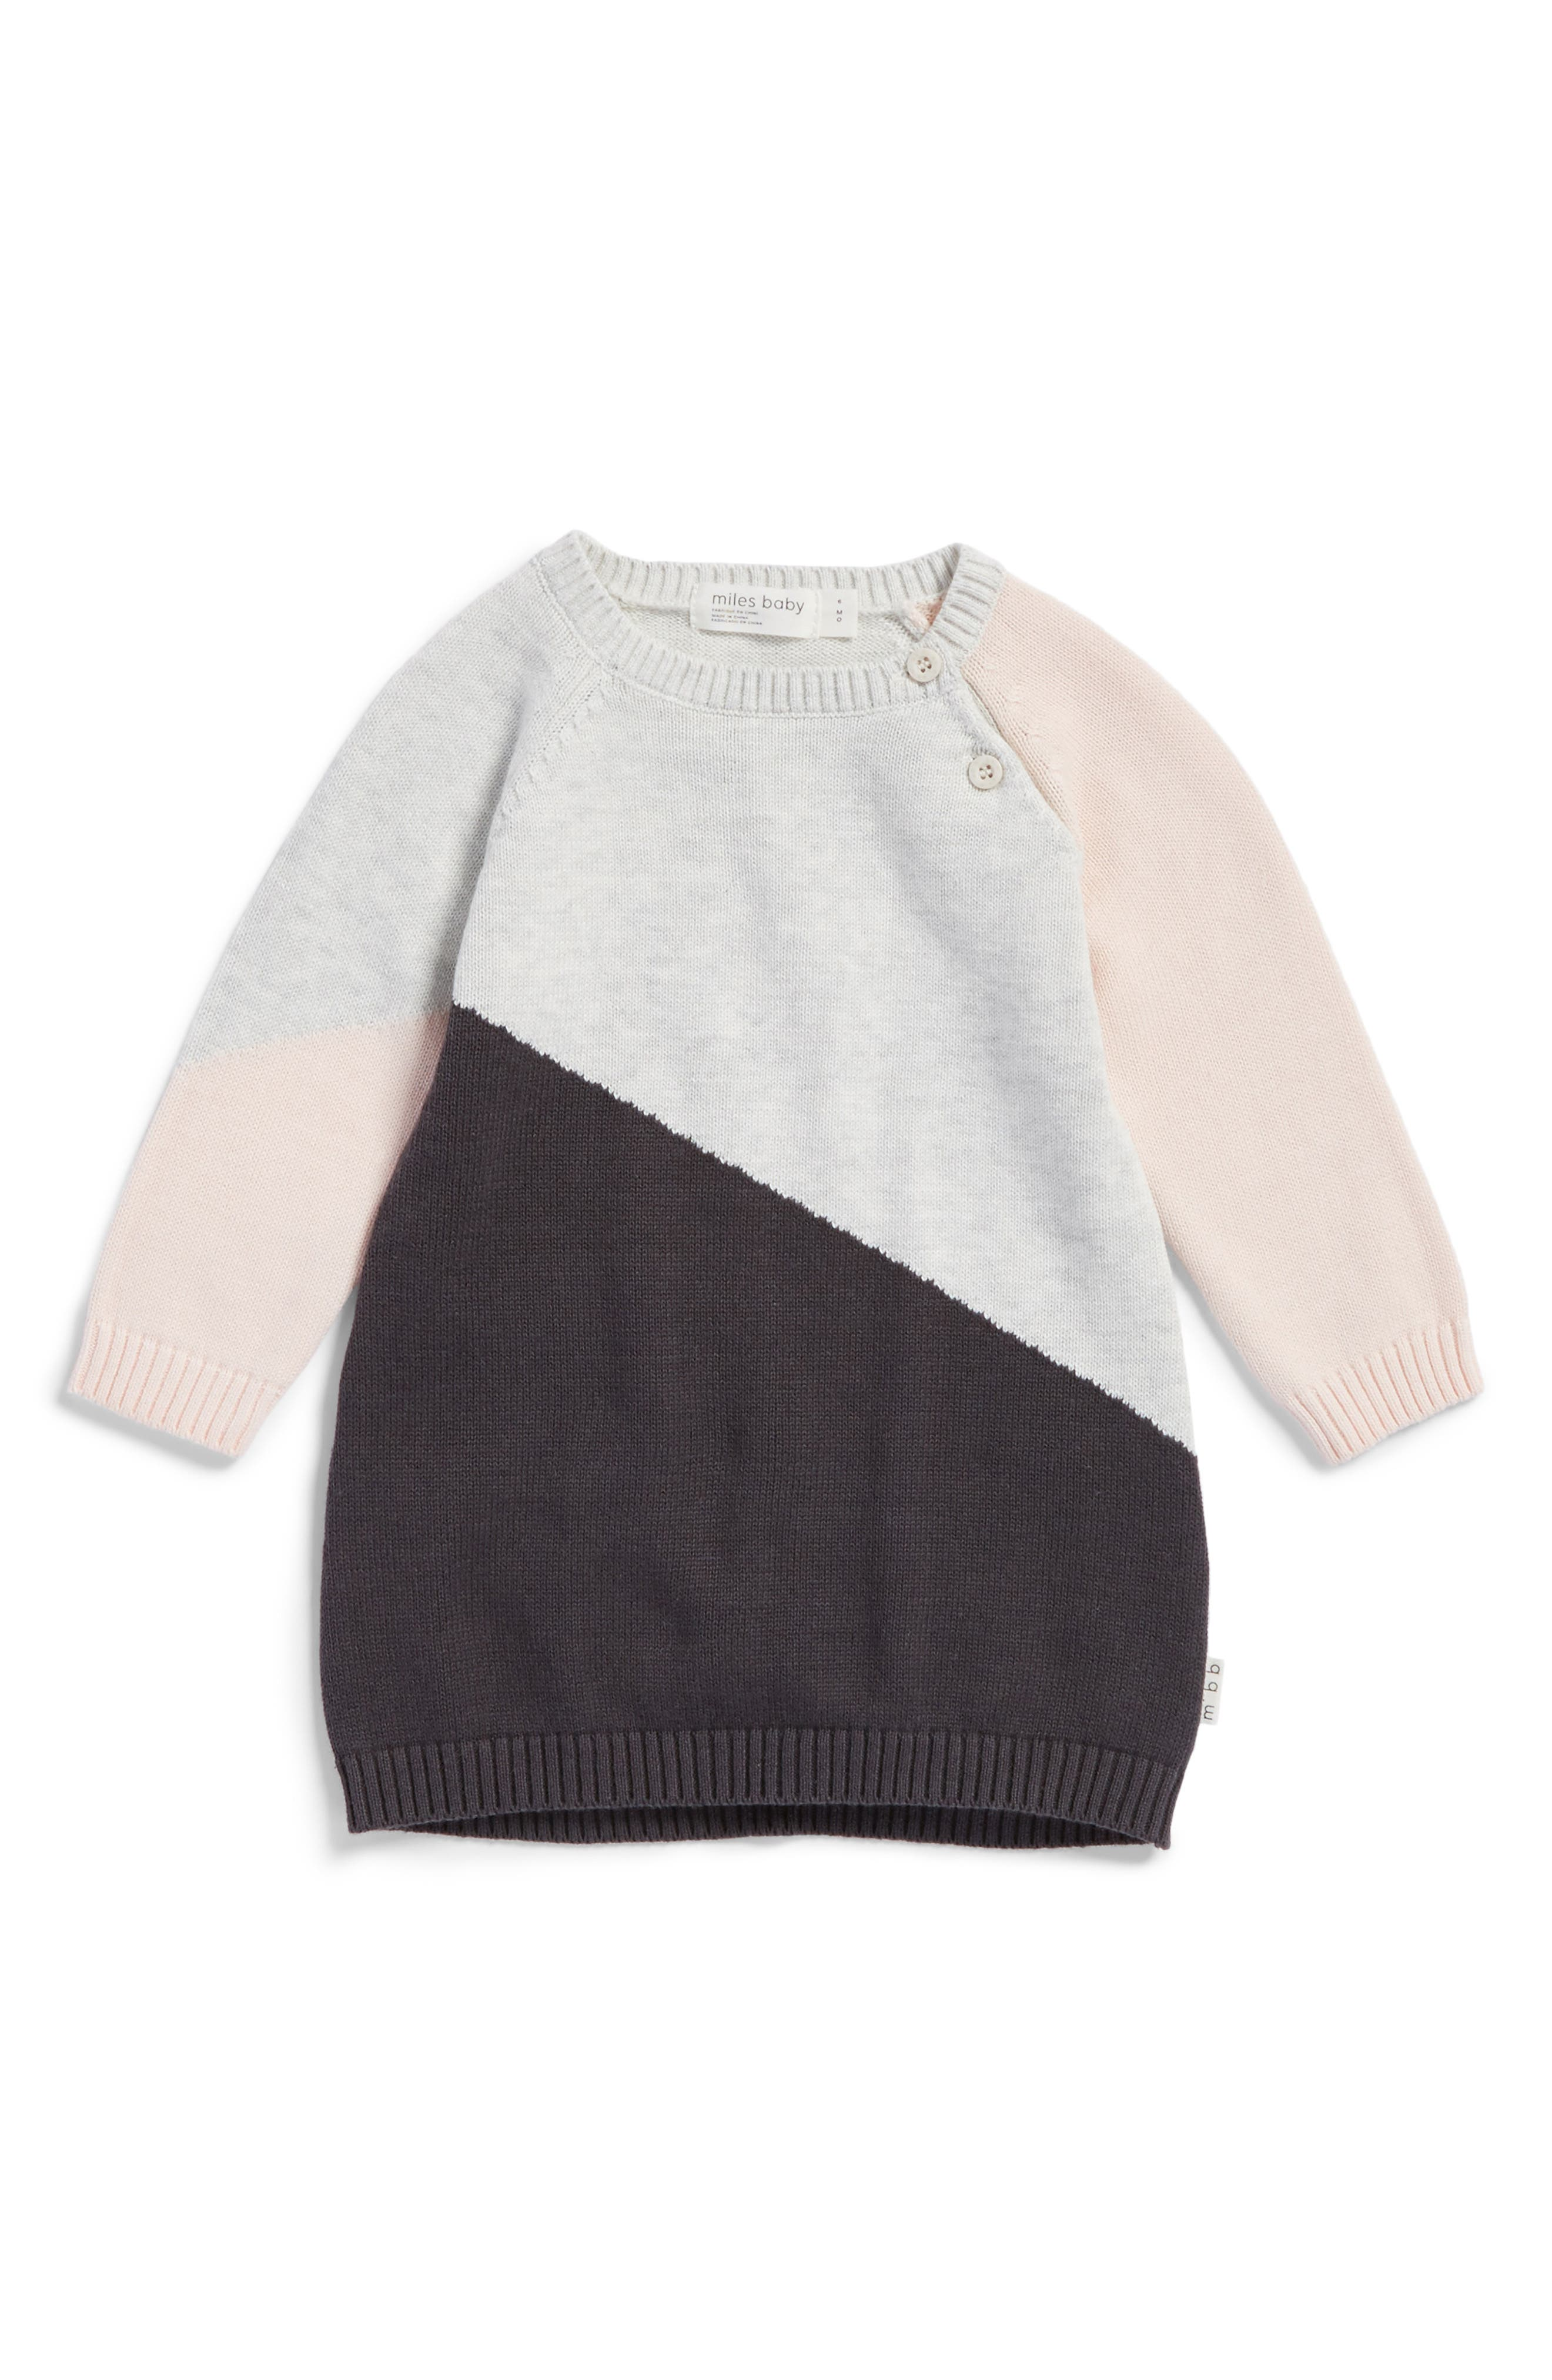 Alternate Image 1 Selected - Miles Baby Knit Sweater Dress (Baby Girls)